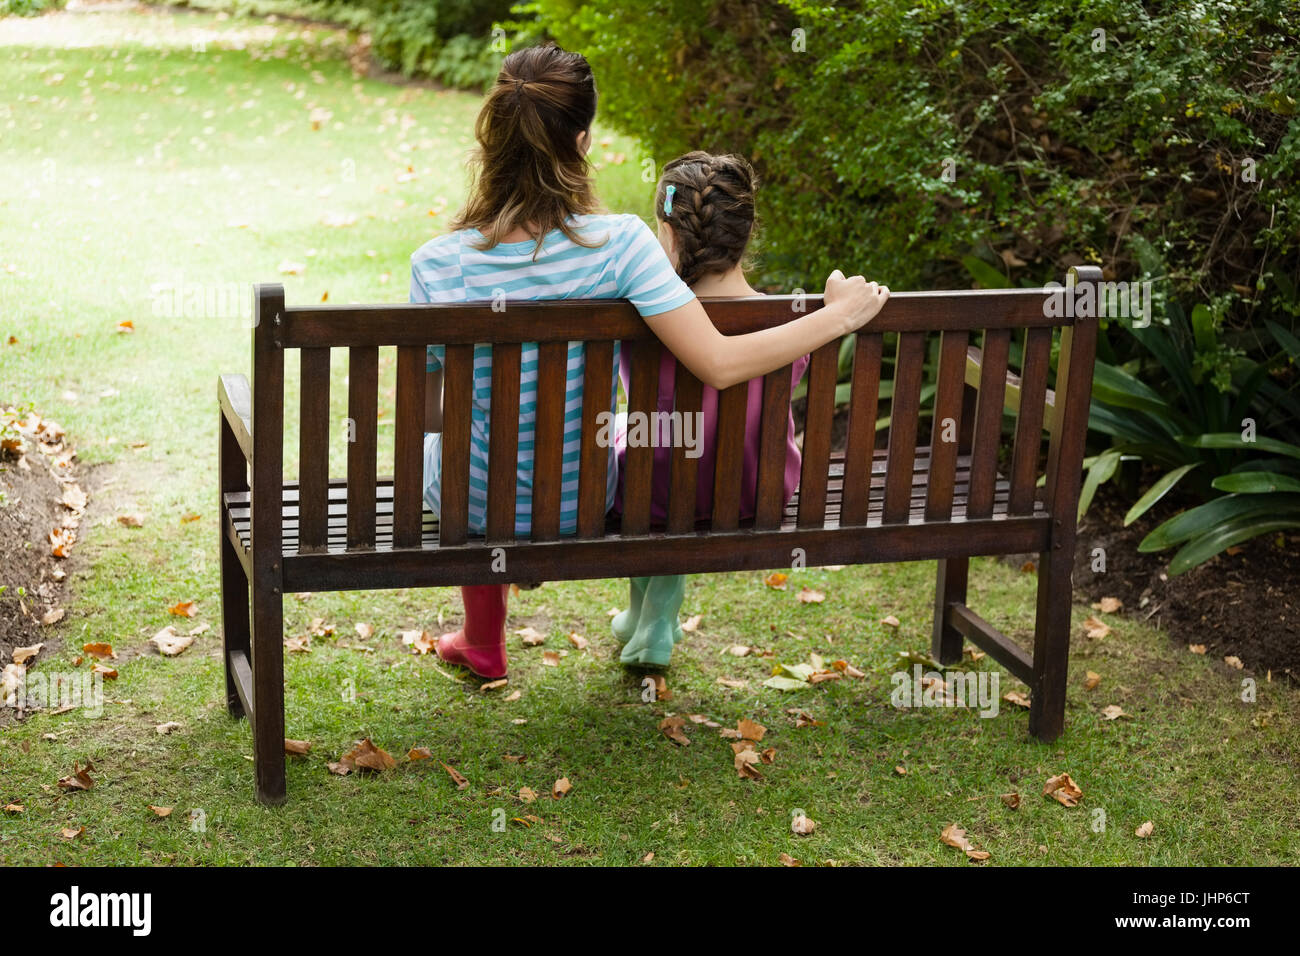 Rear view of woman and girl sitting on wooden bench at backyard - Stock Image